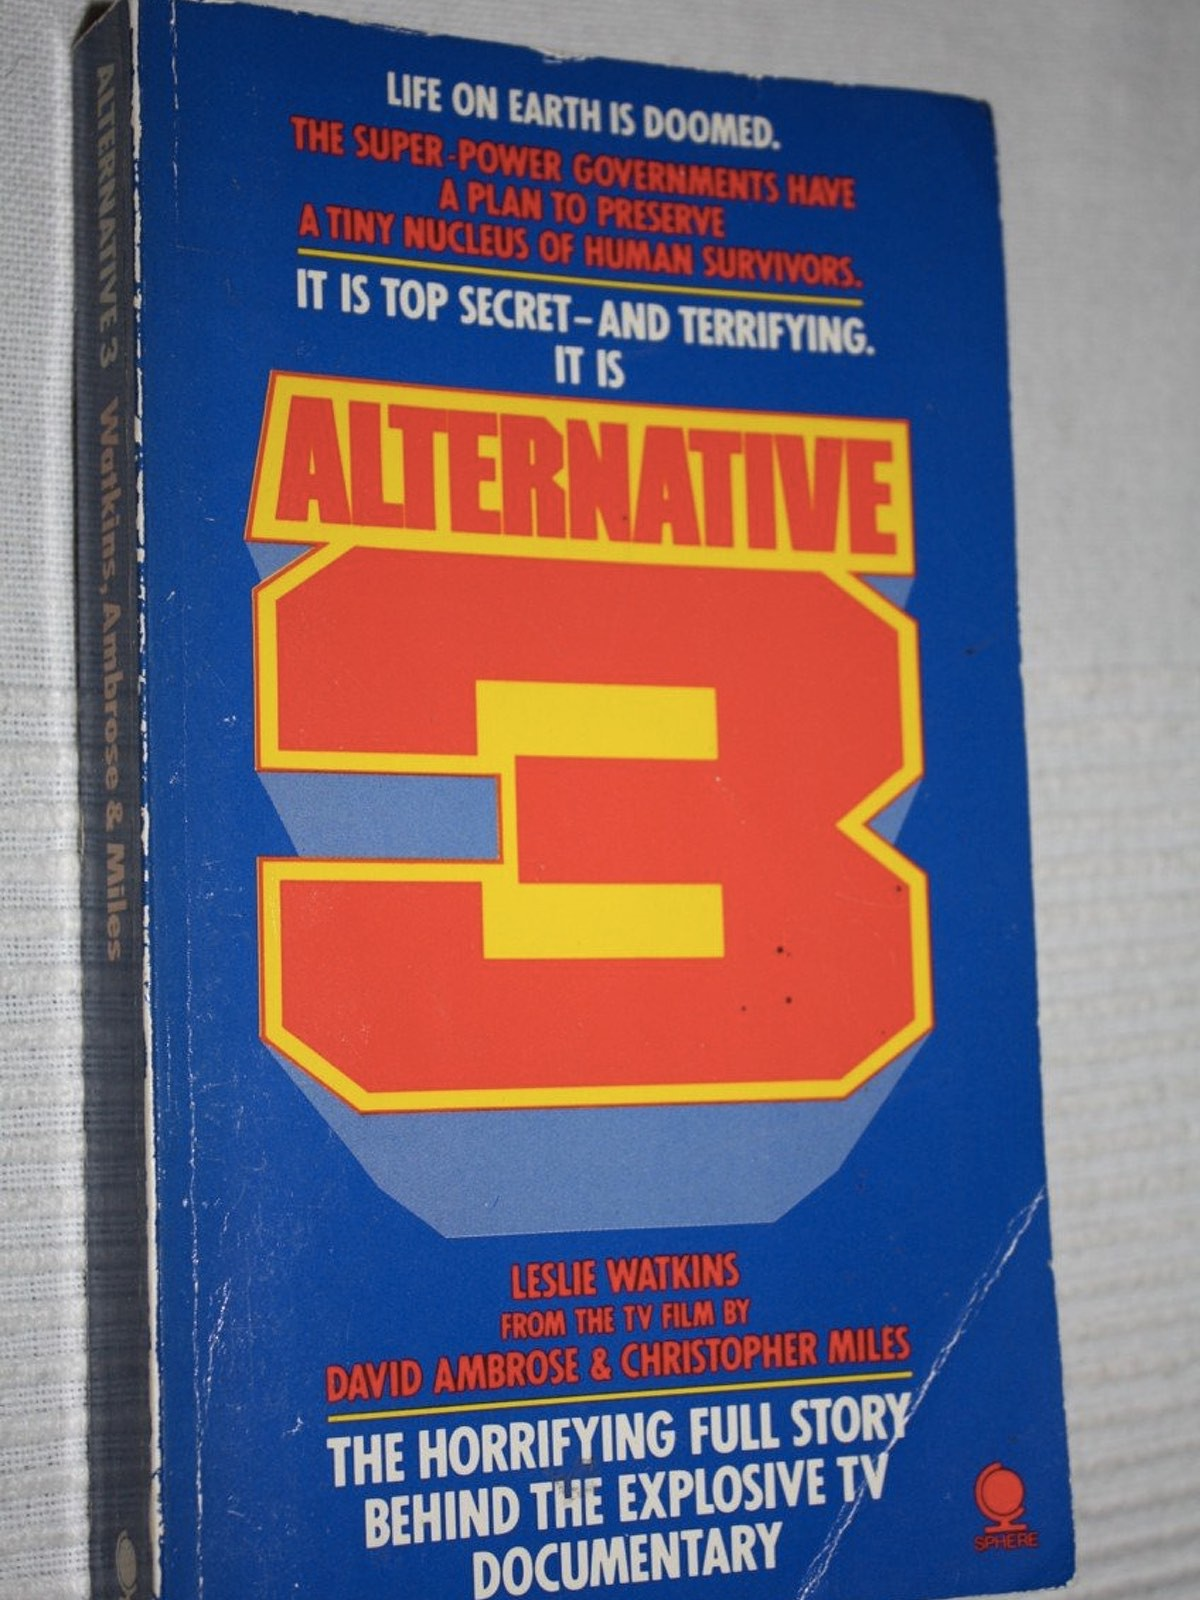 The book of Alternative 3 expanded on the TV show